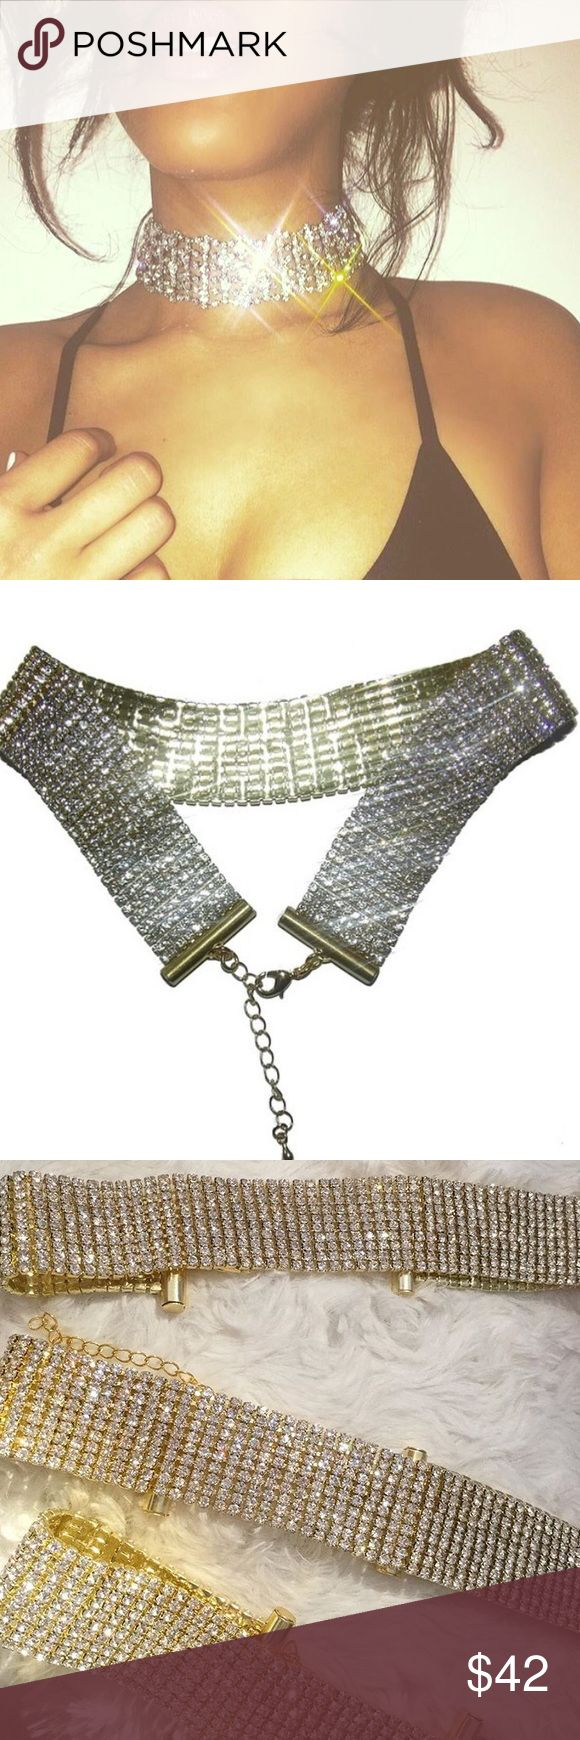 """Glam Rhinestone Choker Ultra glam rhinestone choker can make an outfit  get ready to be blinded by the bling!!! These beauties measures 11 1/2""""- 14 1/2"""". NOT NASTY GAL. LIMITED RUN ON THESE. Nasty Gal Jewelry Necklaces"""